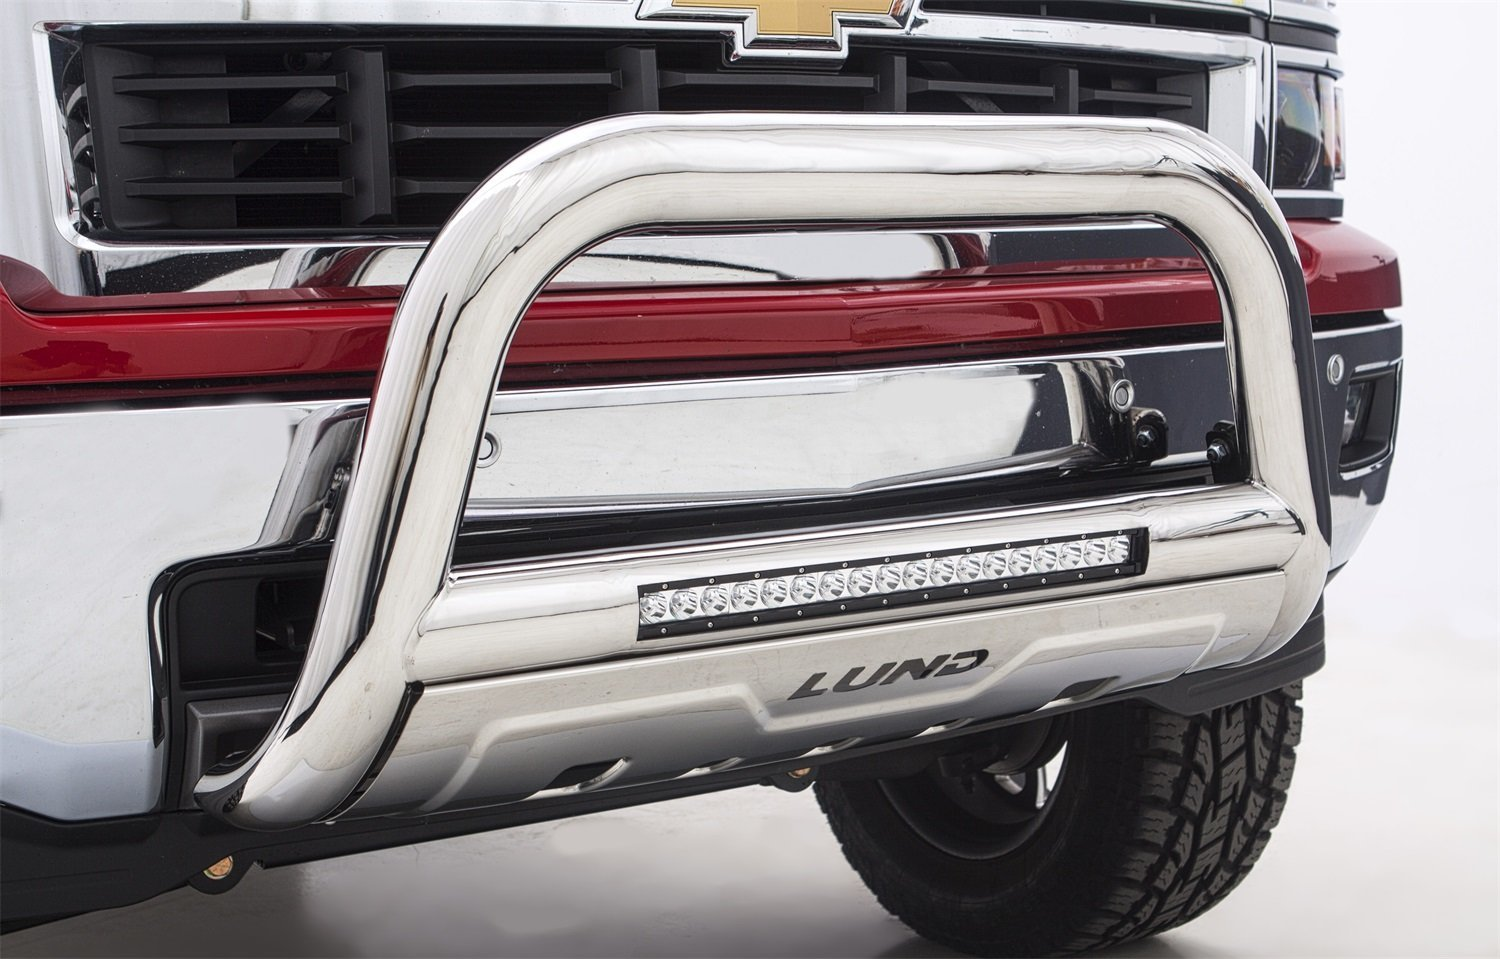 Lund Bull Bar with LED Light Bar - Fast & Free Shipping!